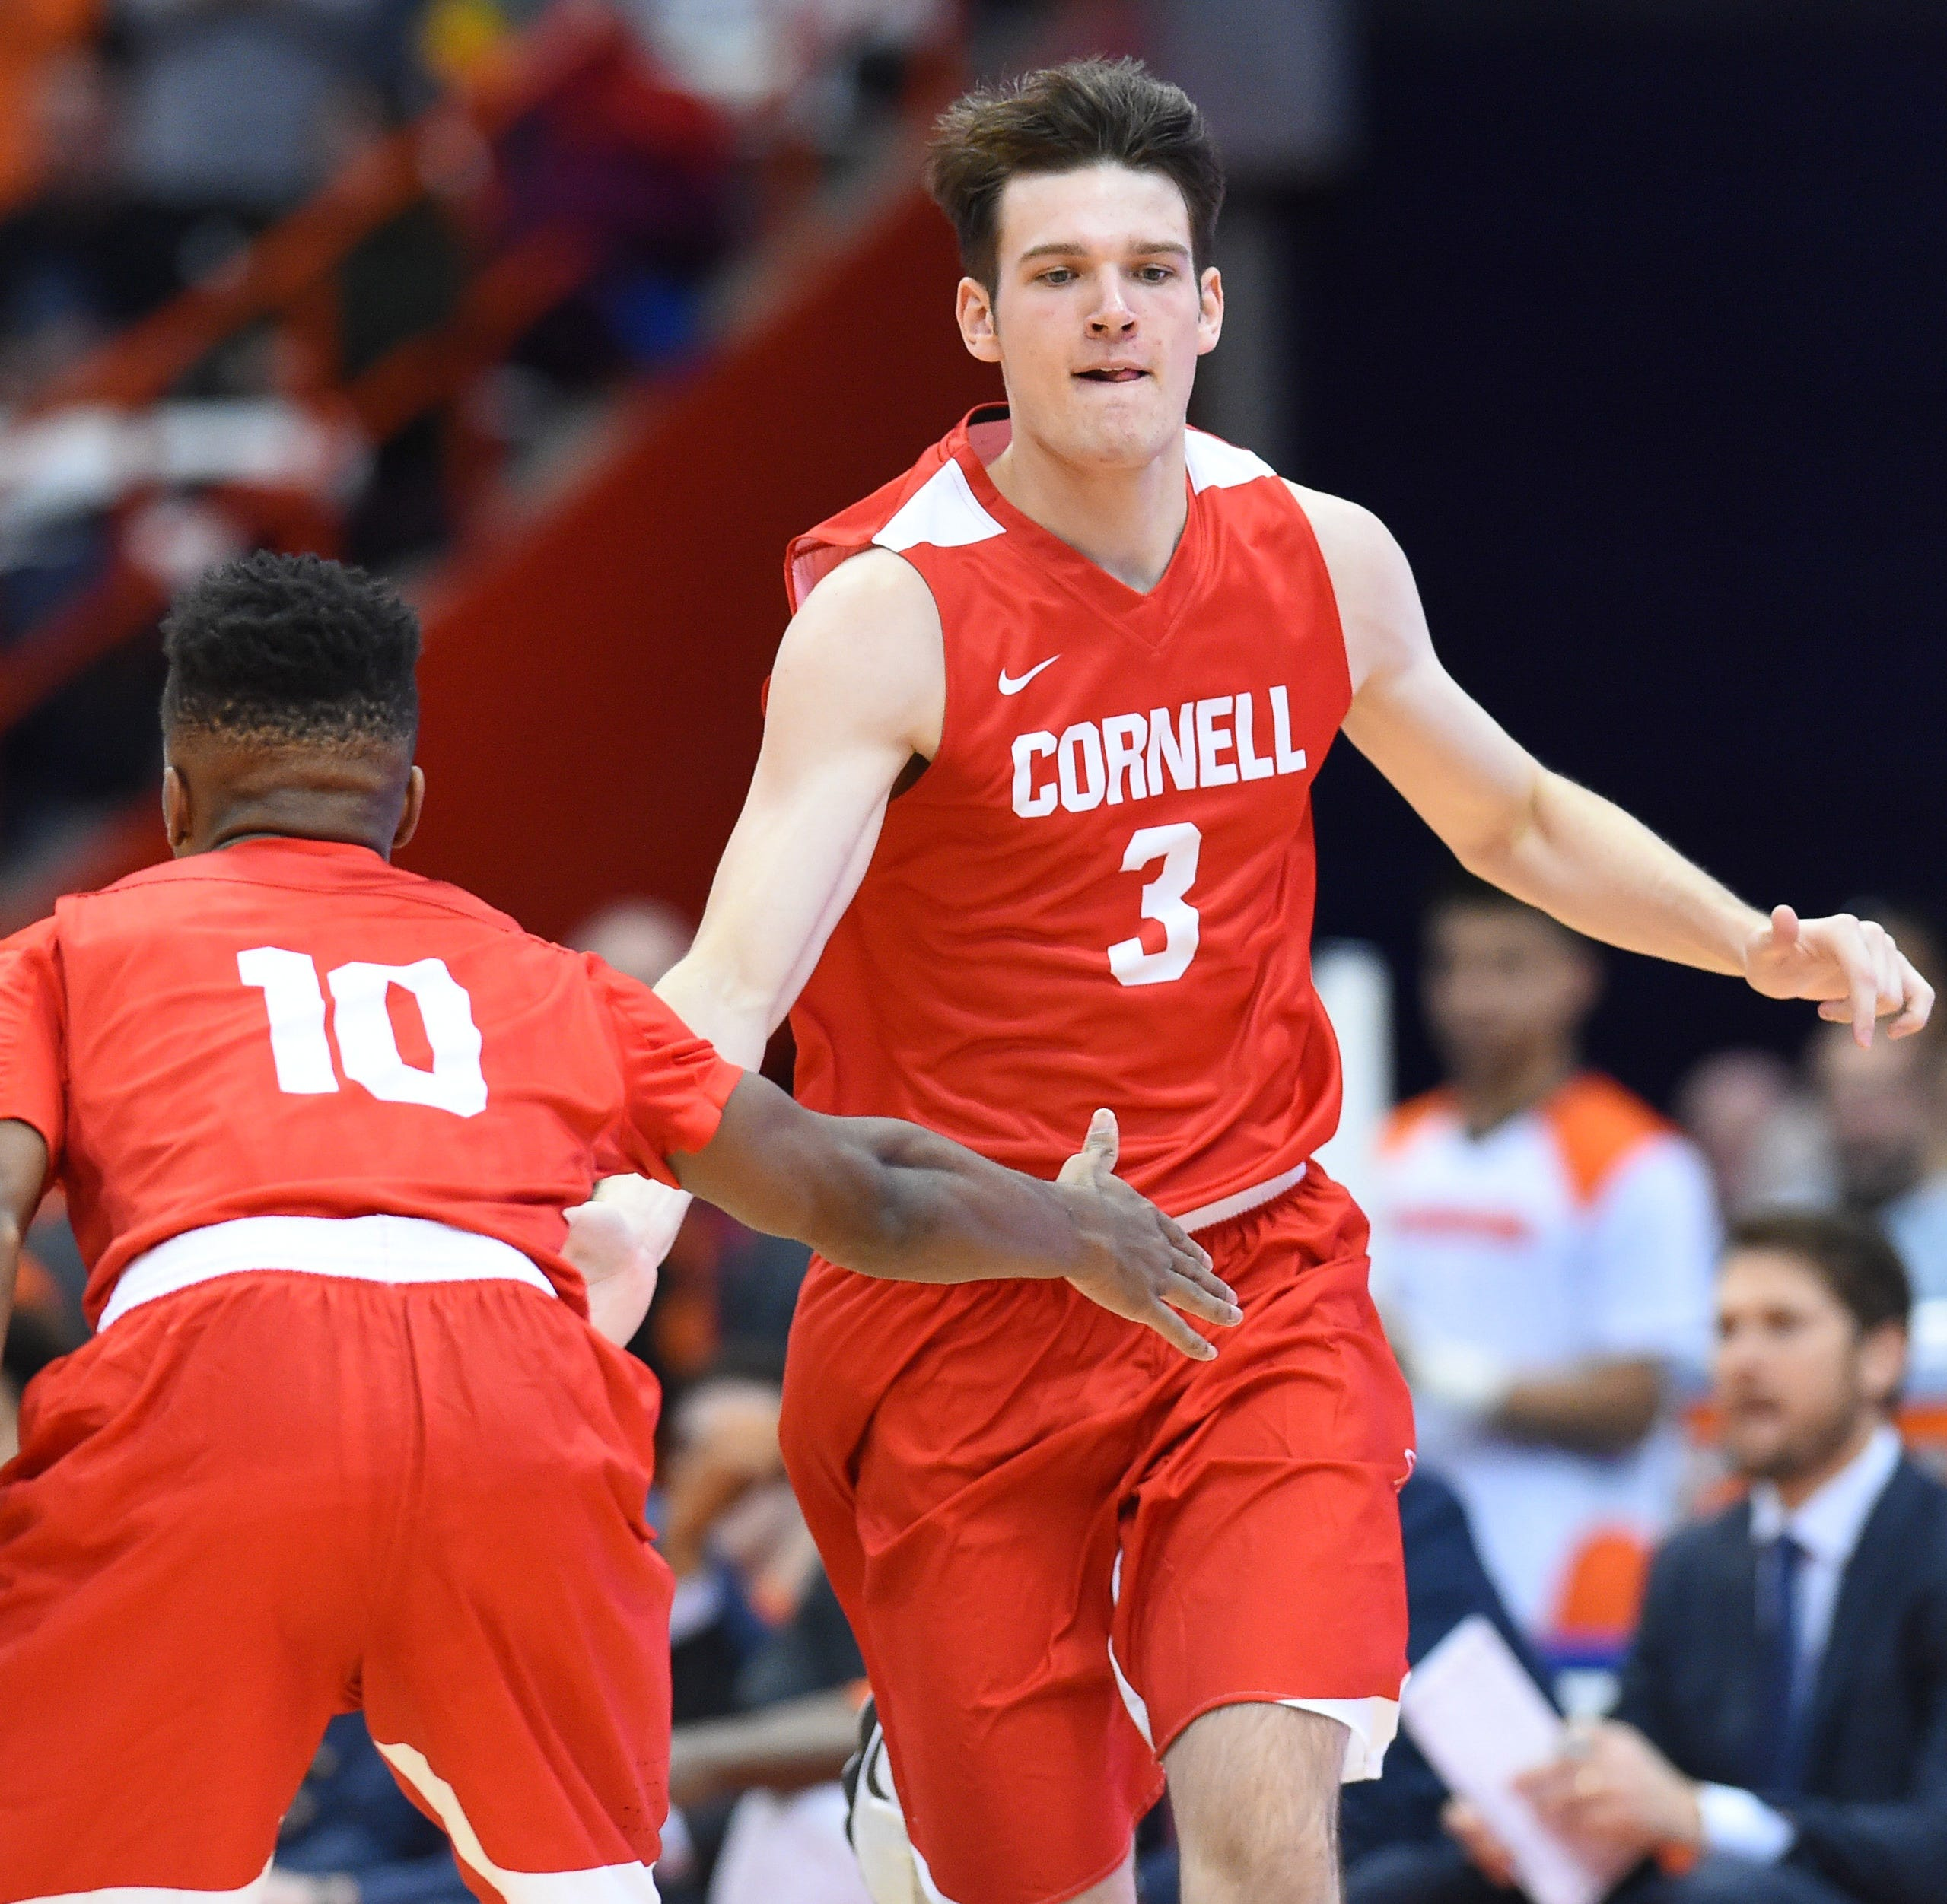 How to watch Penn at Cornell men's basketball game on TV, live stream